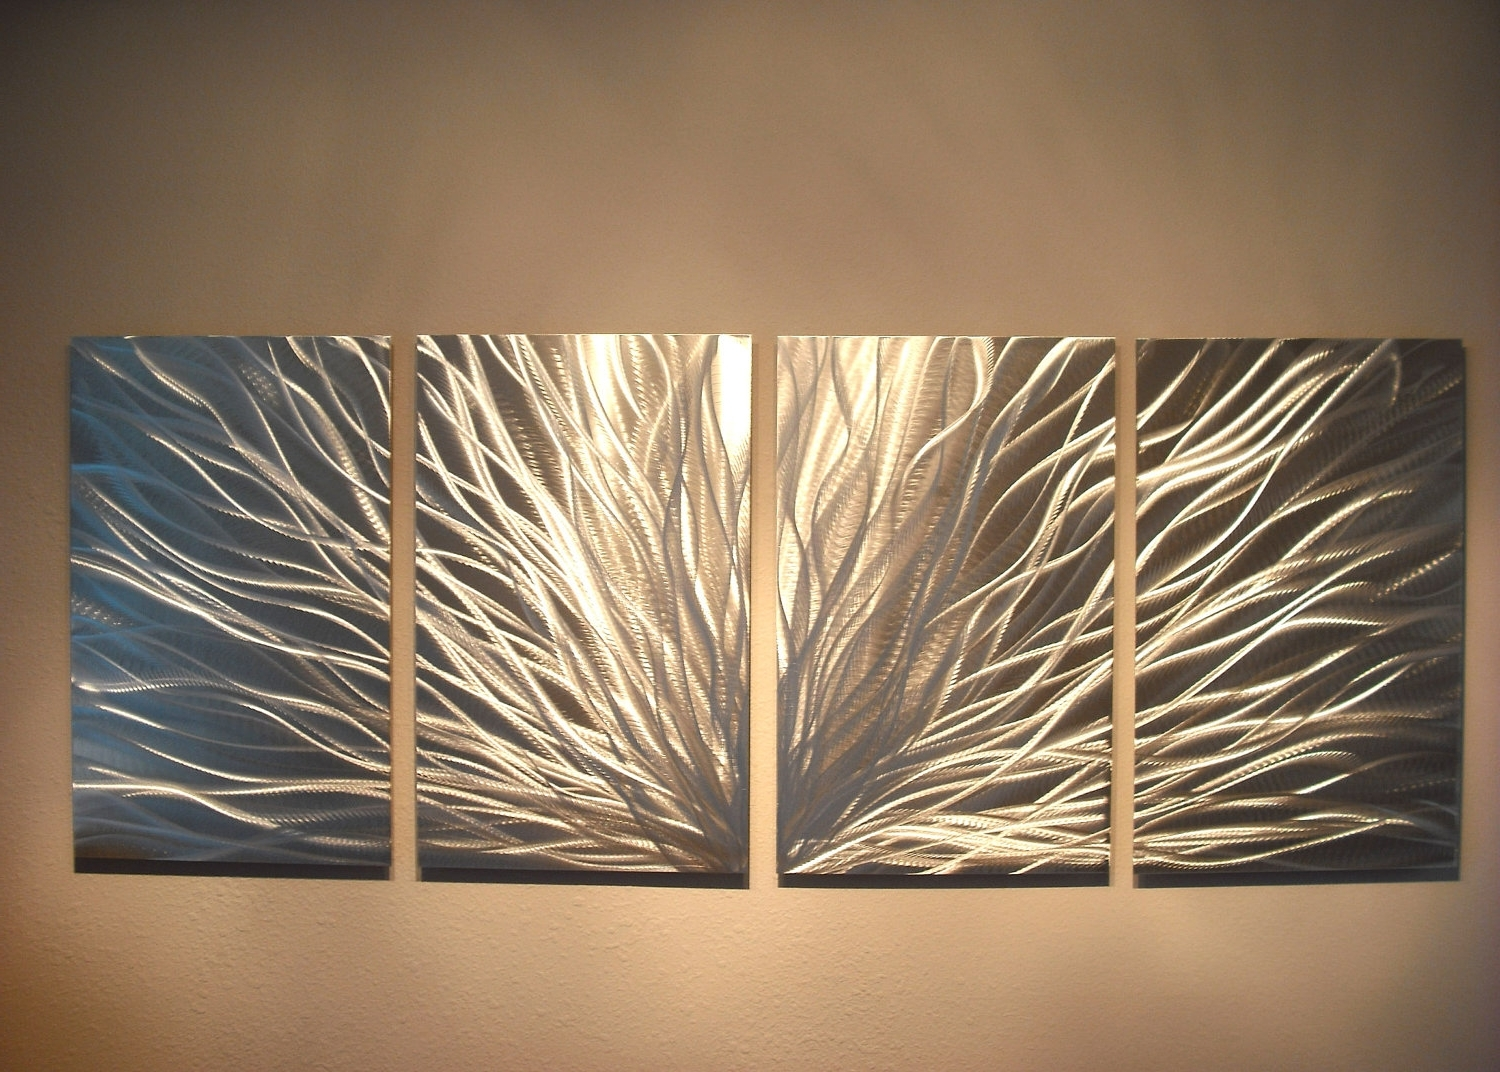 Trendy Decorative Wall Art Within Radiance – Abstract Metal Wall Art Contemporary Modern Decor On Storenvy (View 2 of 15)